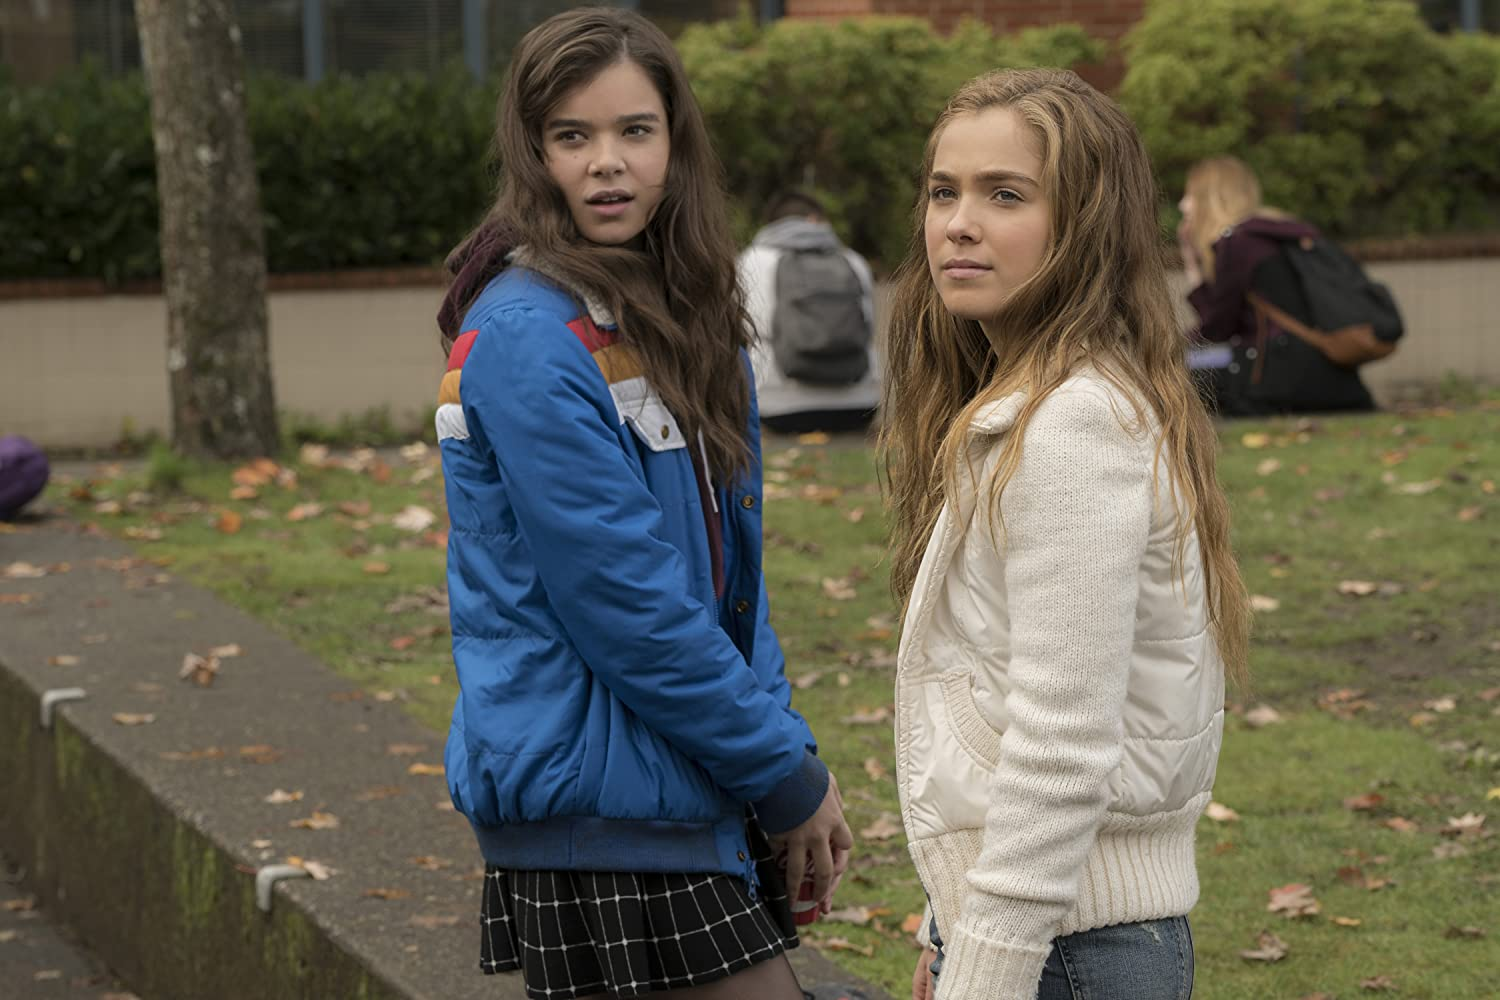 Hailee Steinfeld and Haley Lu Richardson in The Edge of Seventeen (2016)